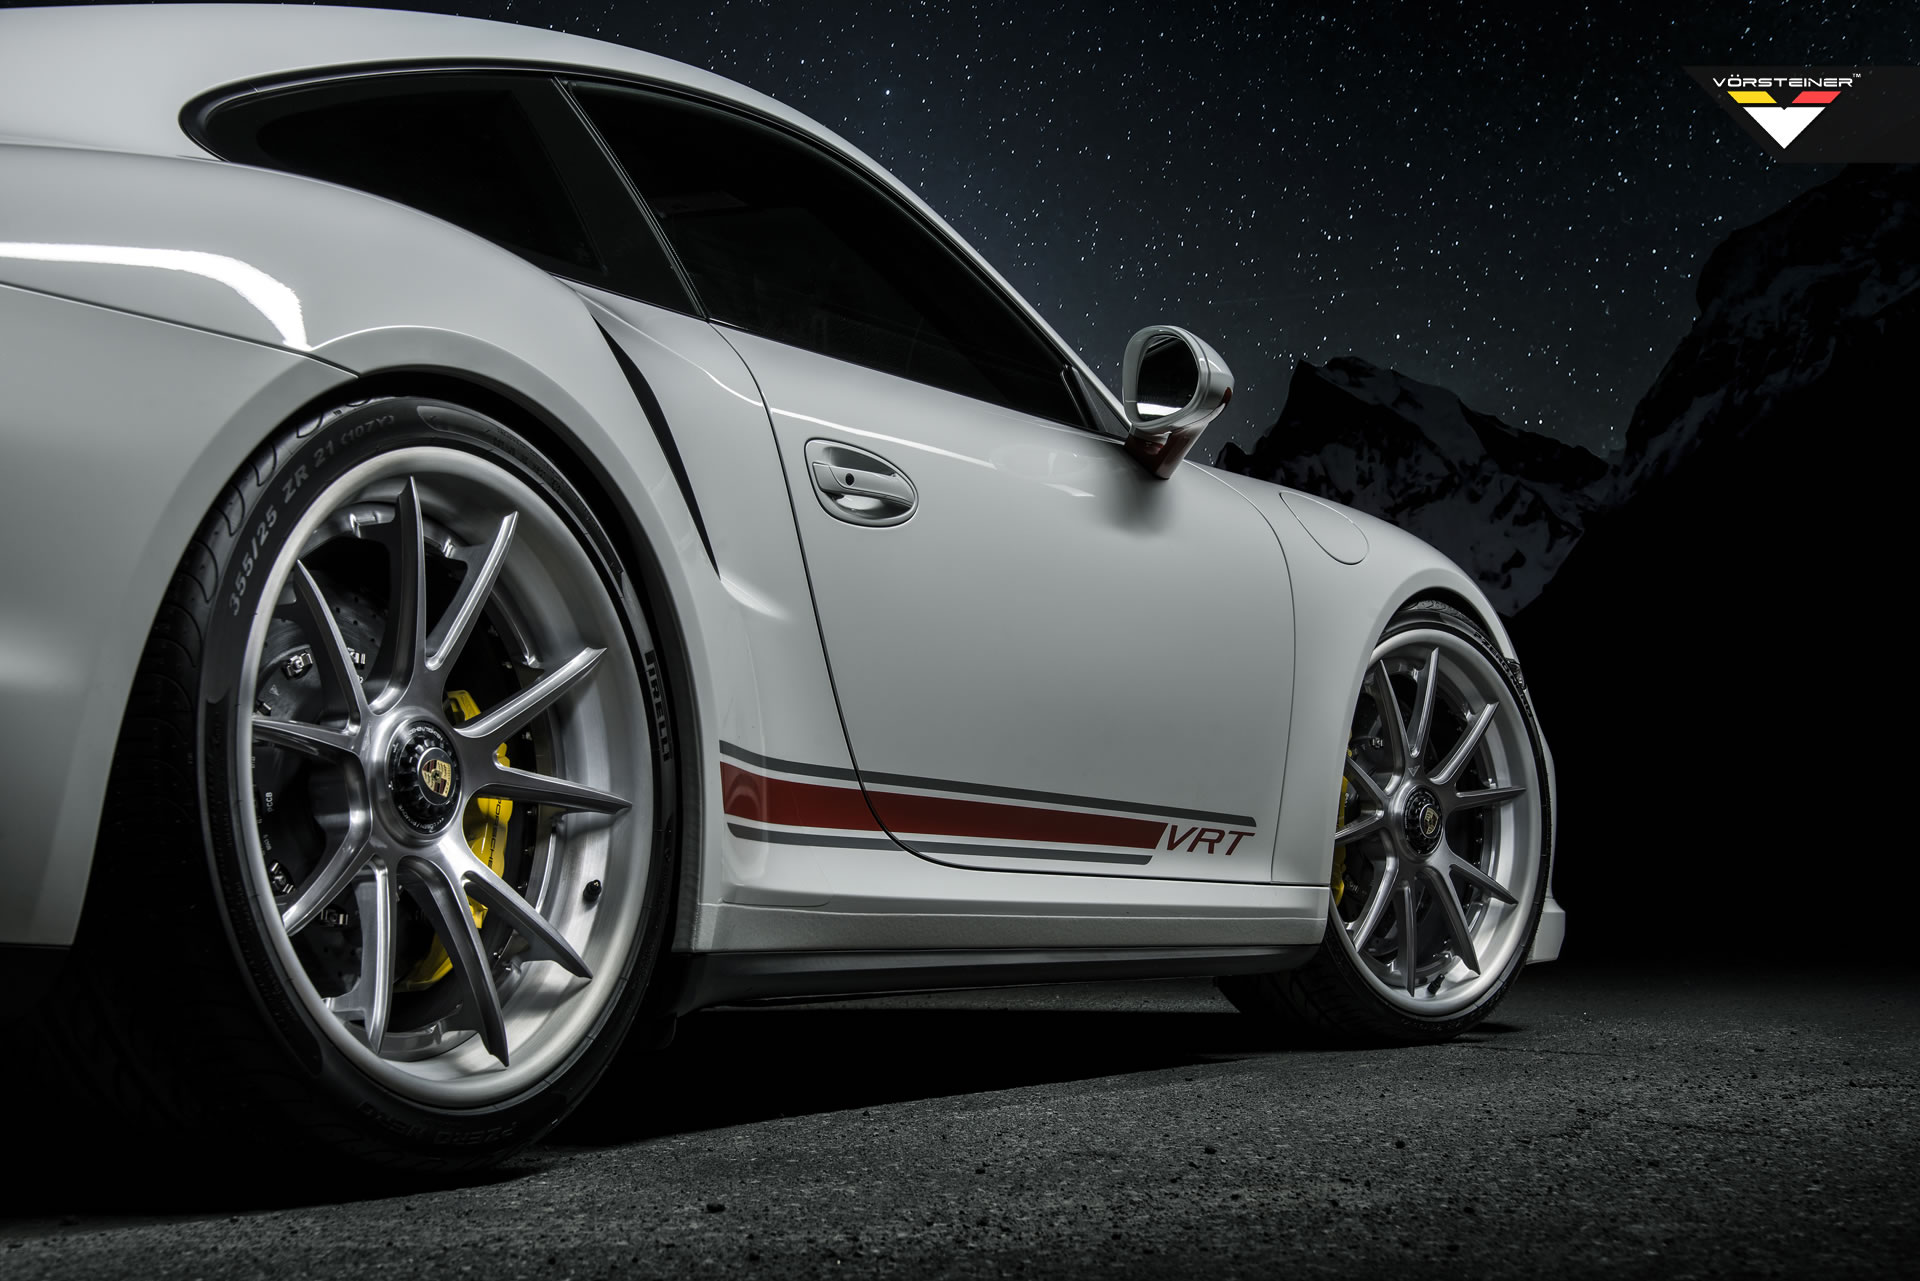 2015 porsche 911 turbo s vse 004 by vorsteiner detail. Black Bedroom Furniture Sets. Home Design Ideas